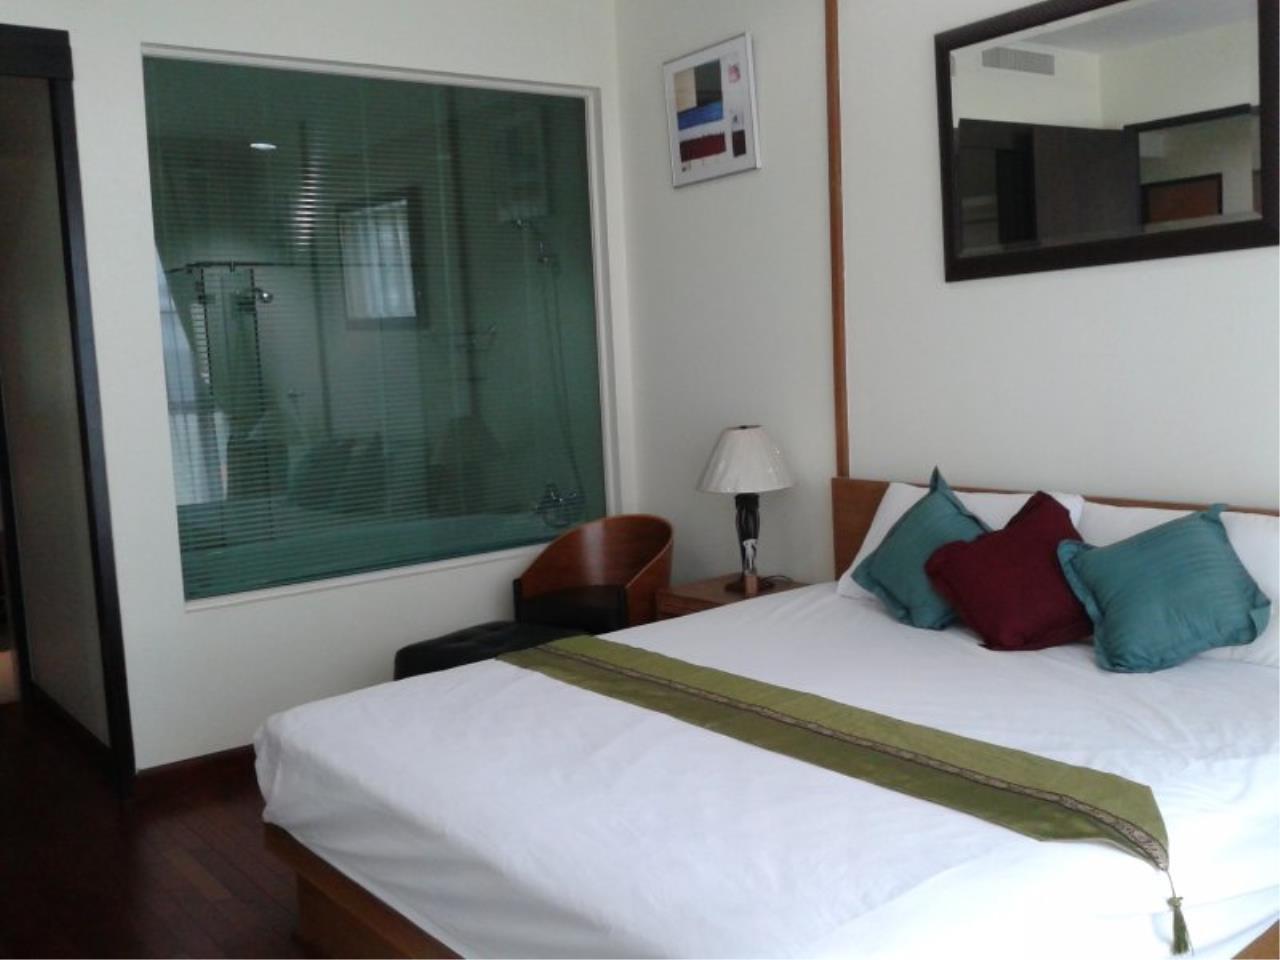 Piri Property Agency's Comfort 2 Bedrooms in The Address Chidlom Condo for rent 1